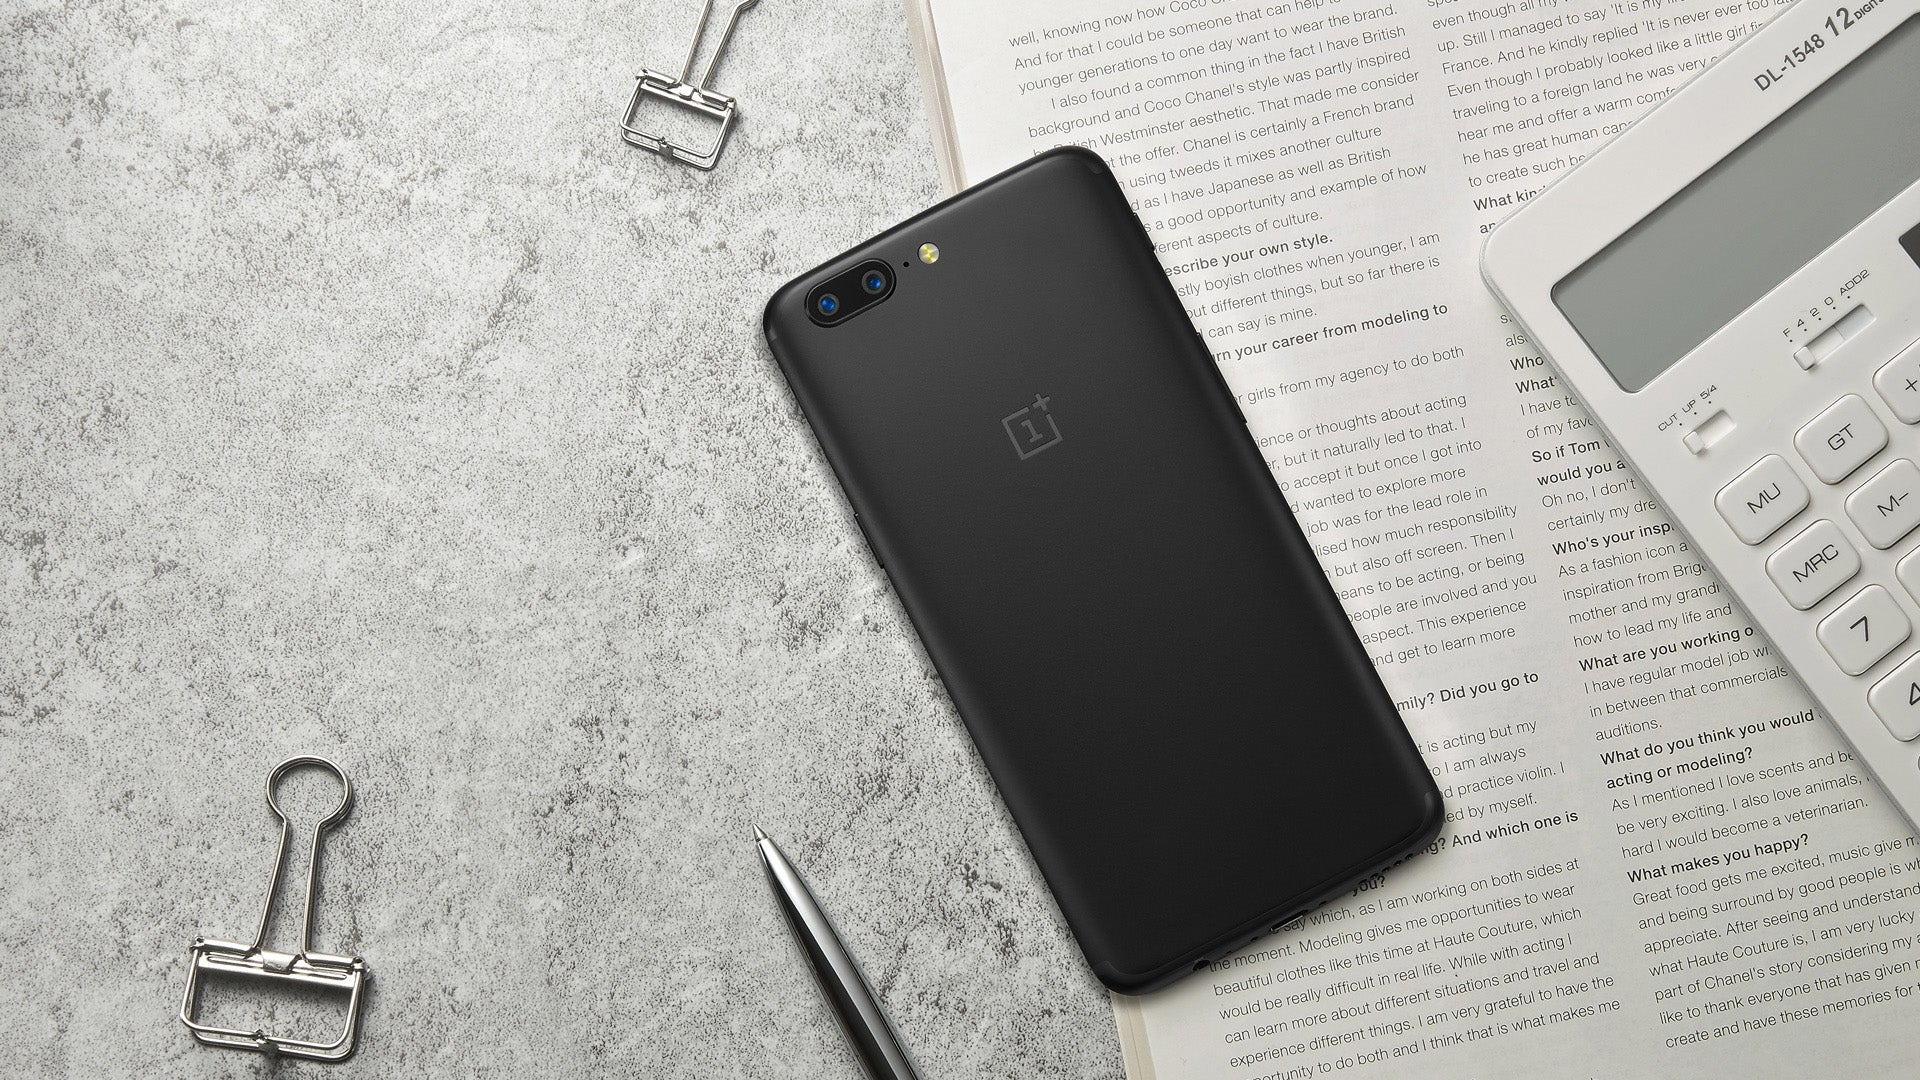 Dc5n United States It In English Created At 2017 11 08 1815 Ferrari On Track Quilted Wireless Powerbank 10k Mah Black Scheduled To Be Announced November 16 The Oneplus 5t Is Rumoured Feature Near Identical Internals 5 Should Pack Same